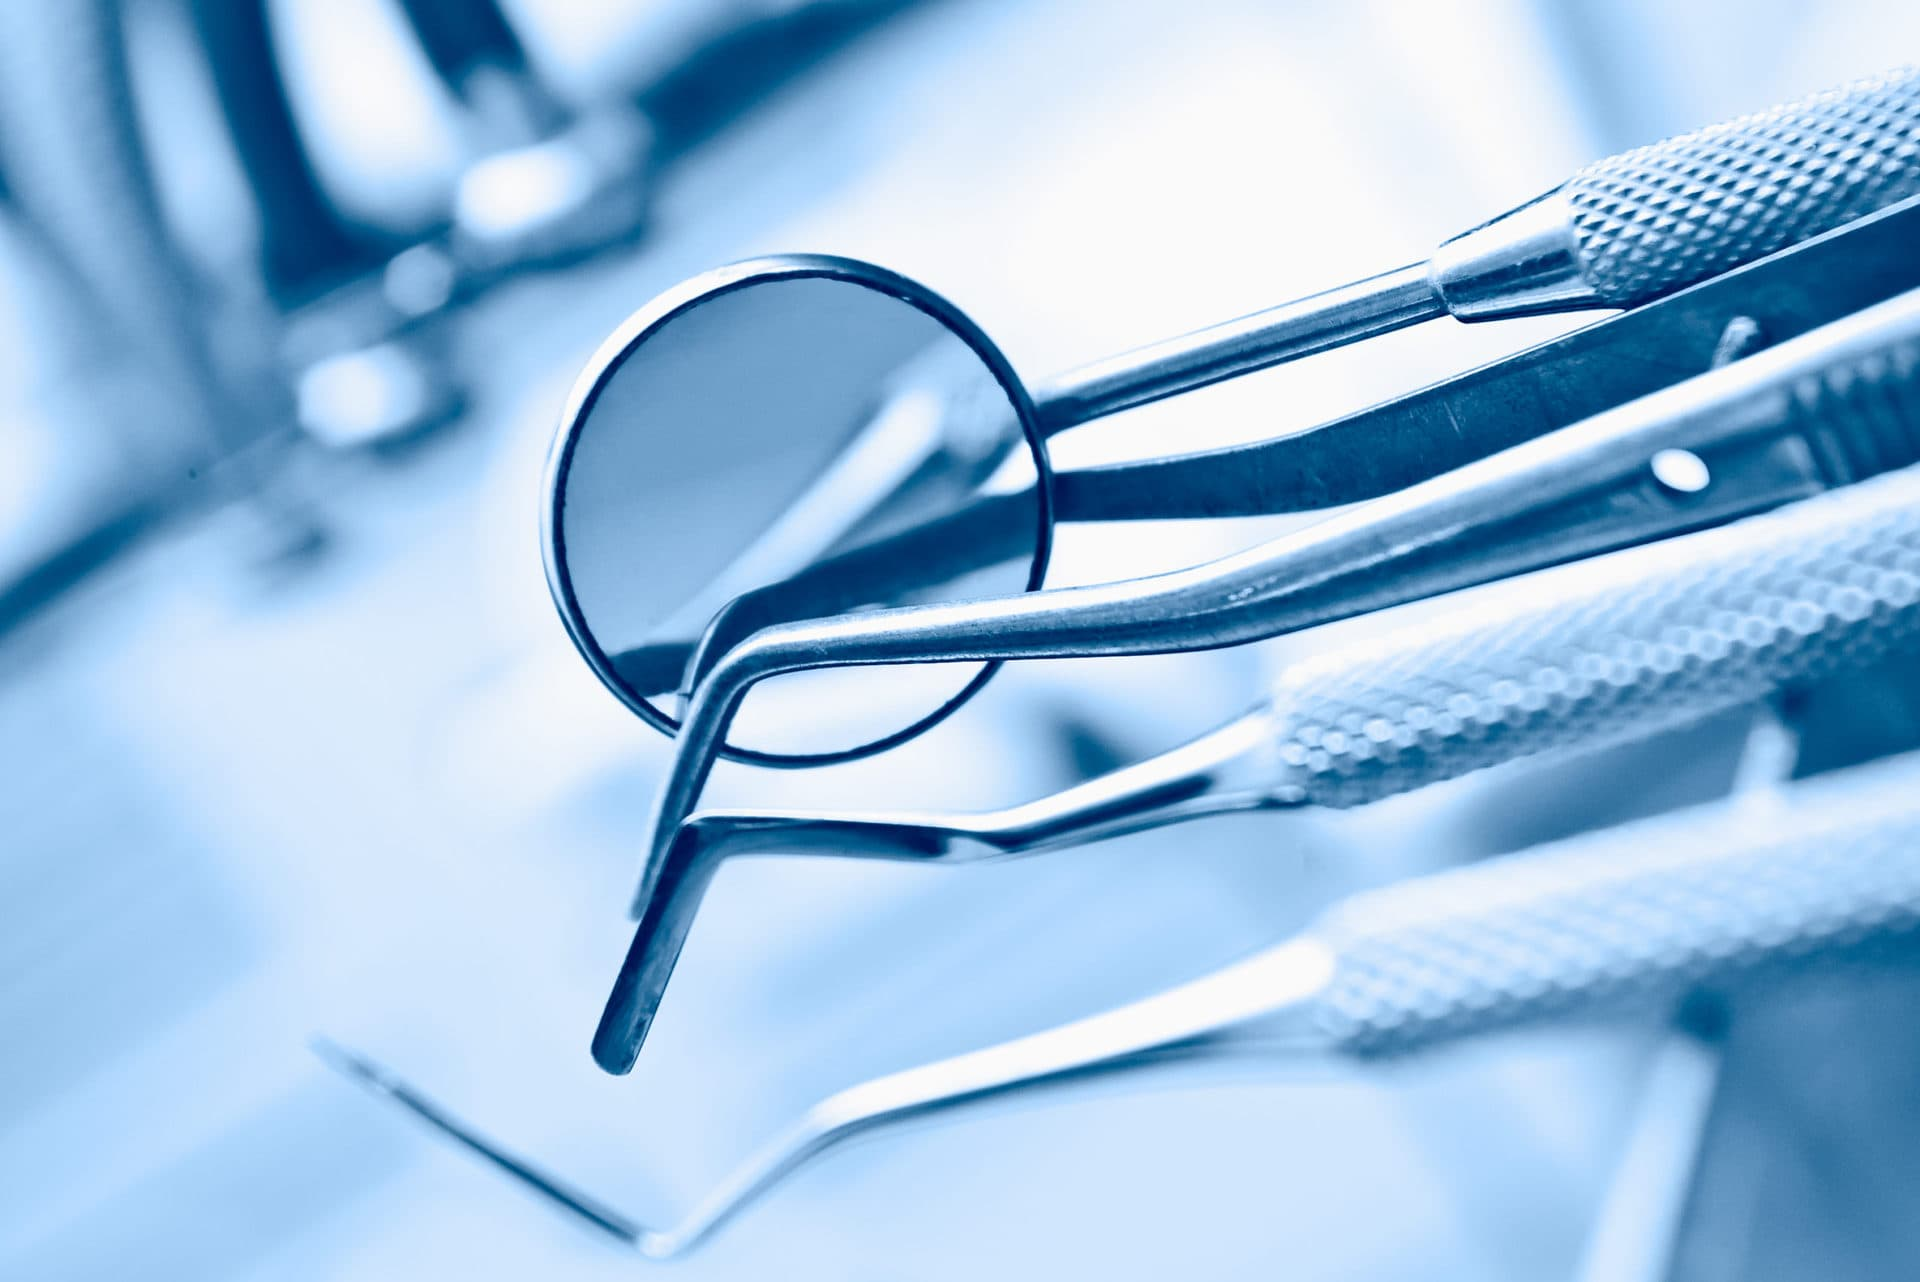 dentist's instruments with shallow depth of field blue tinted